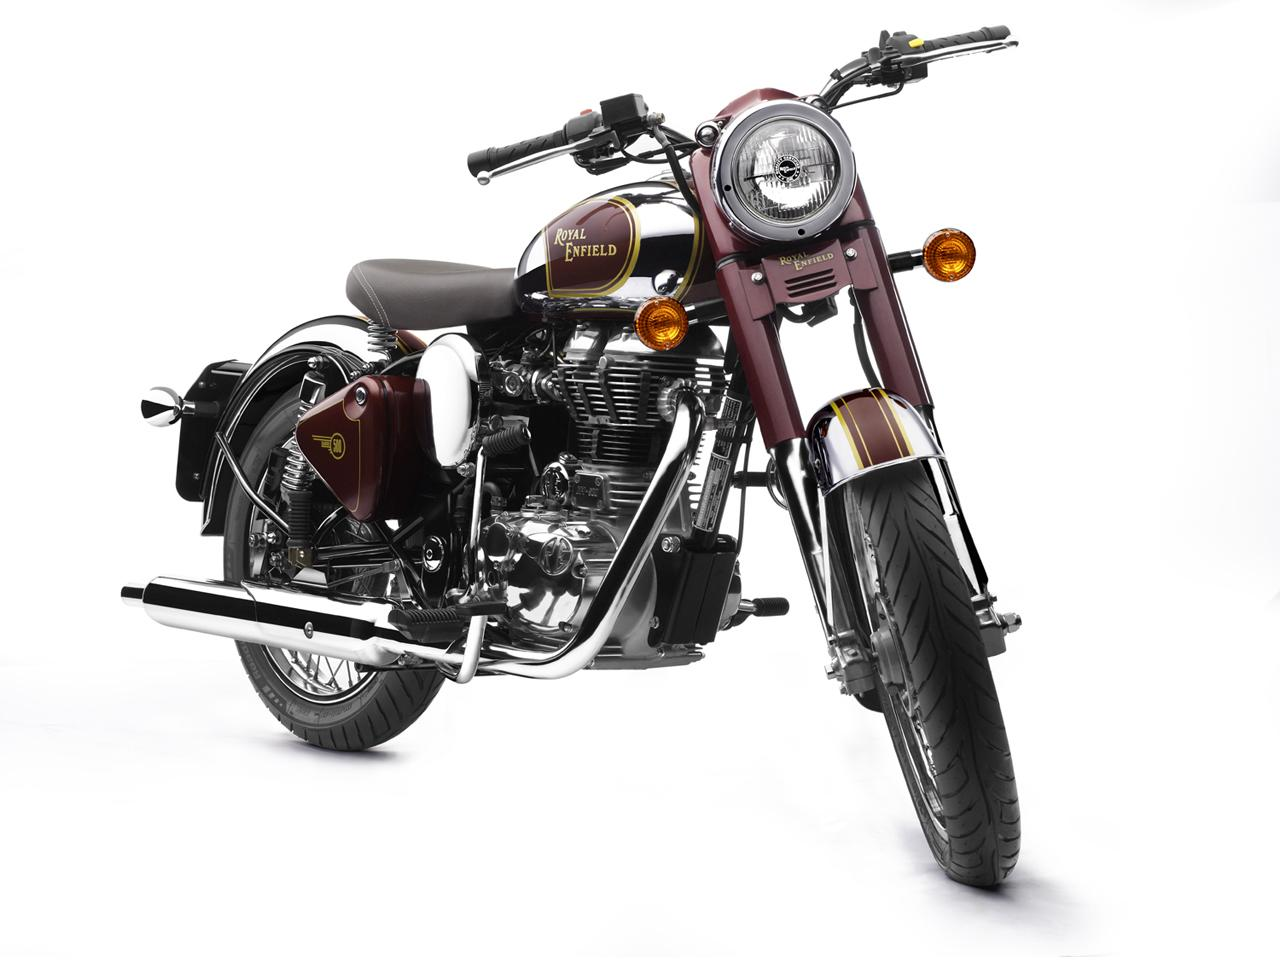 2004 Enfield Euro Classic 500 #4